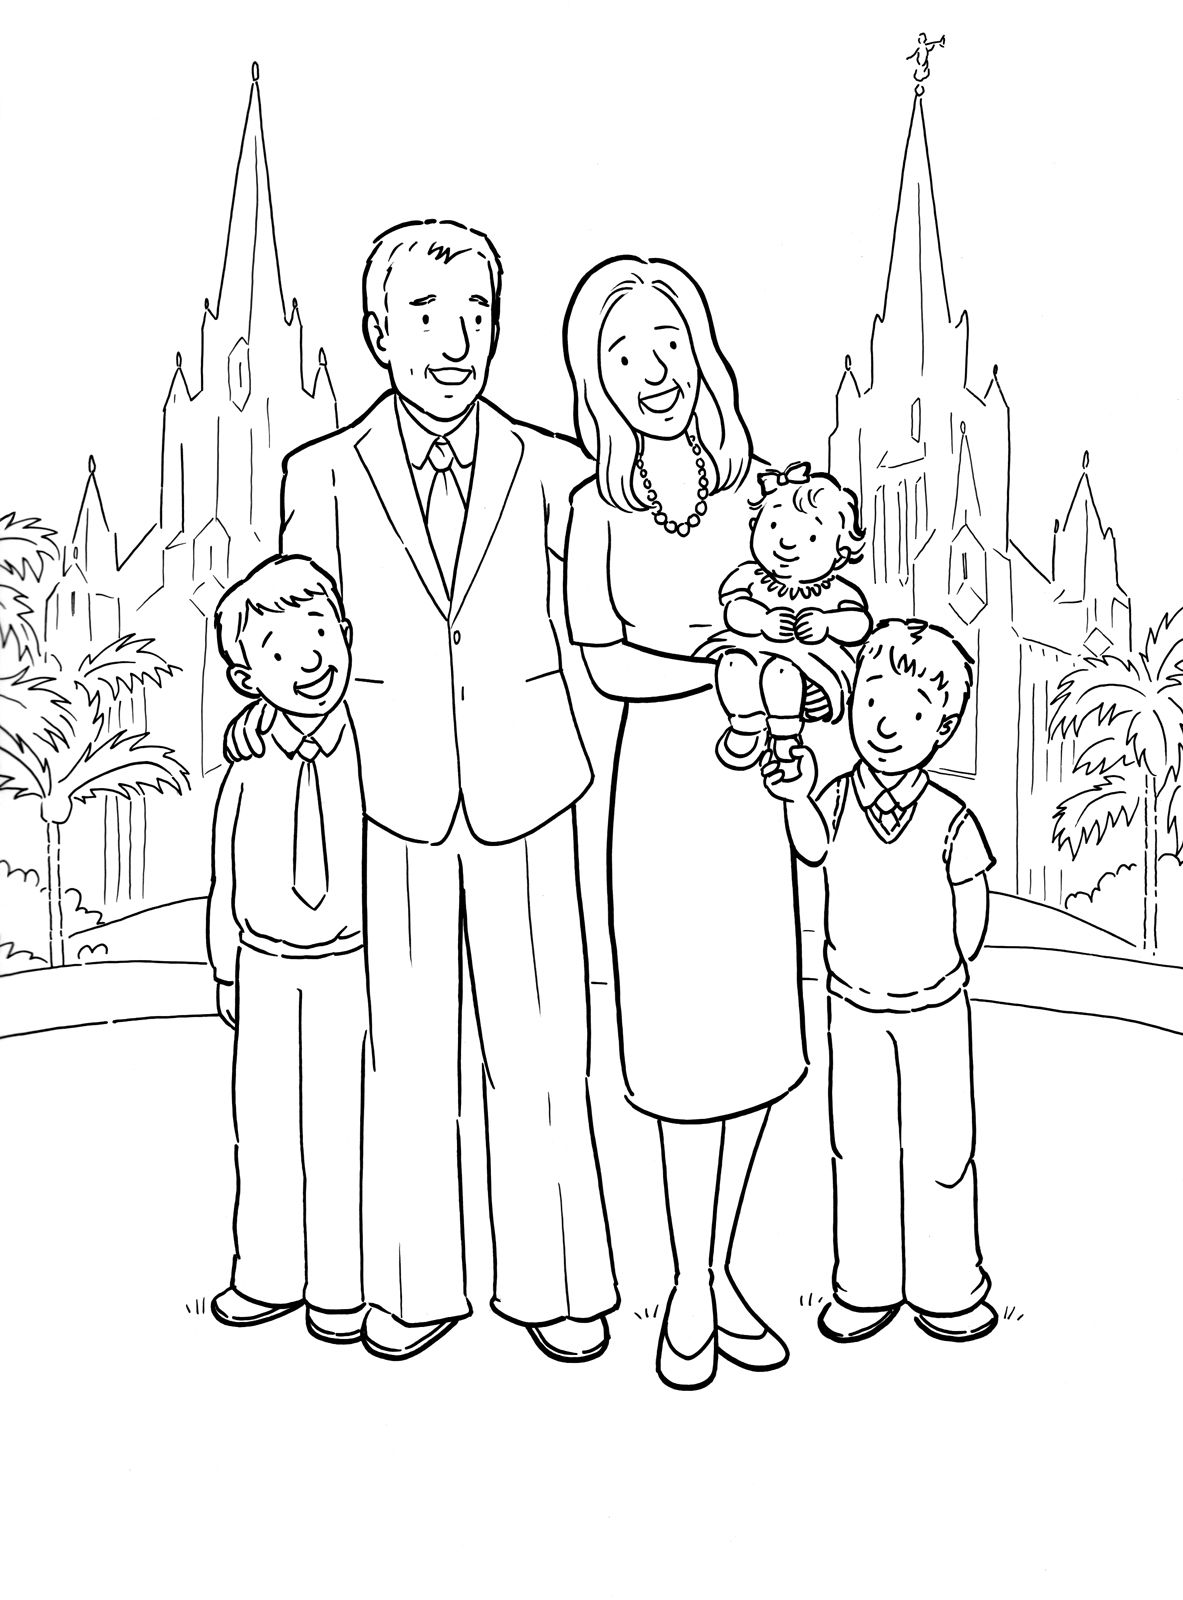 A Happy Family At The Sango Temple A Primary Coloring Page From Lds Lds Mormon